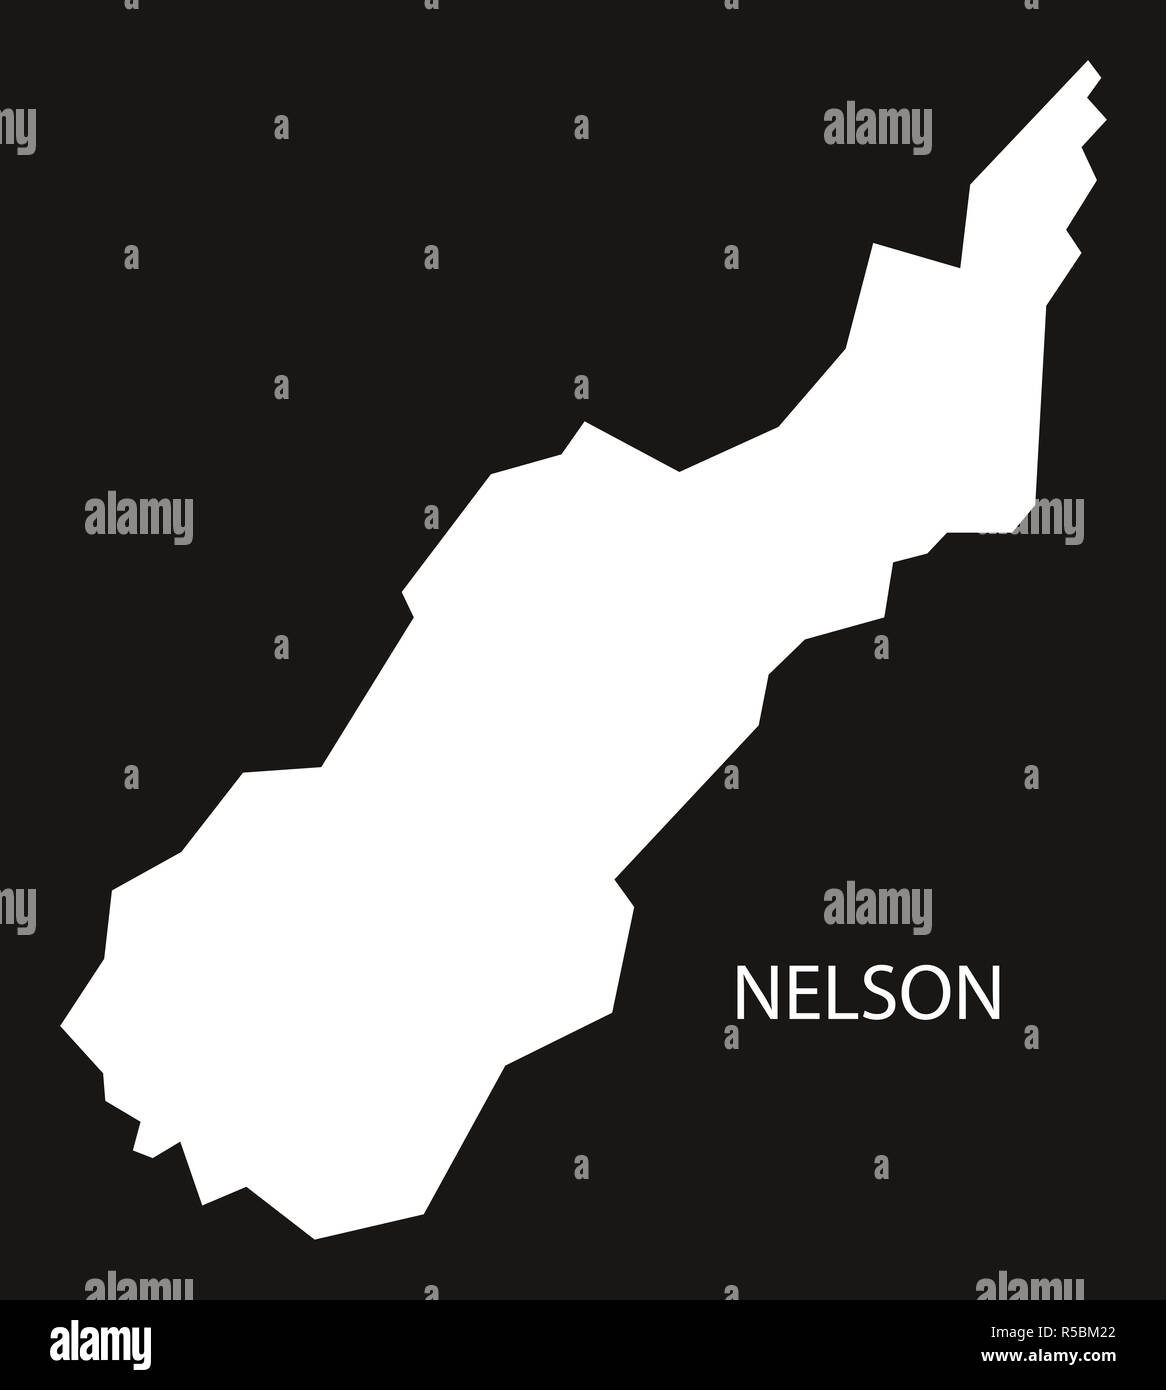 Map Nelson New Zealand.Nelson New Zealand Map Black Inverted Silhouette Illustration Stock